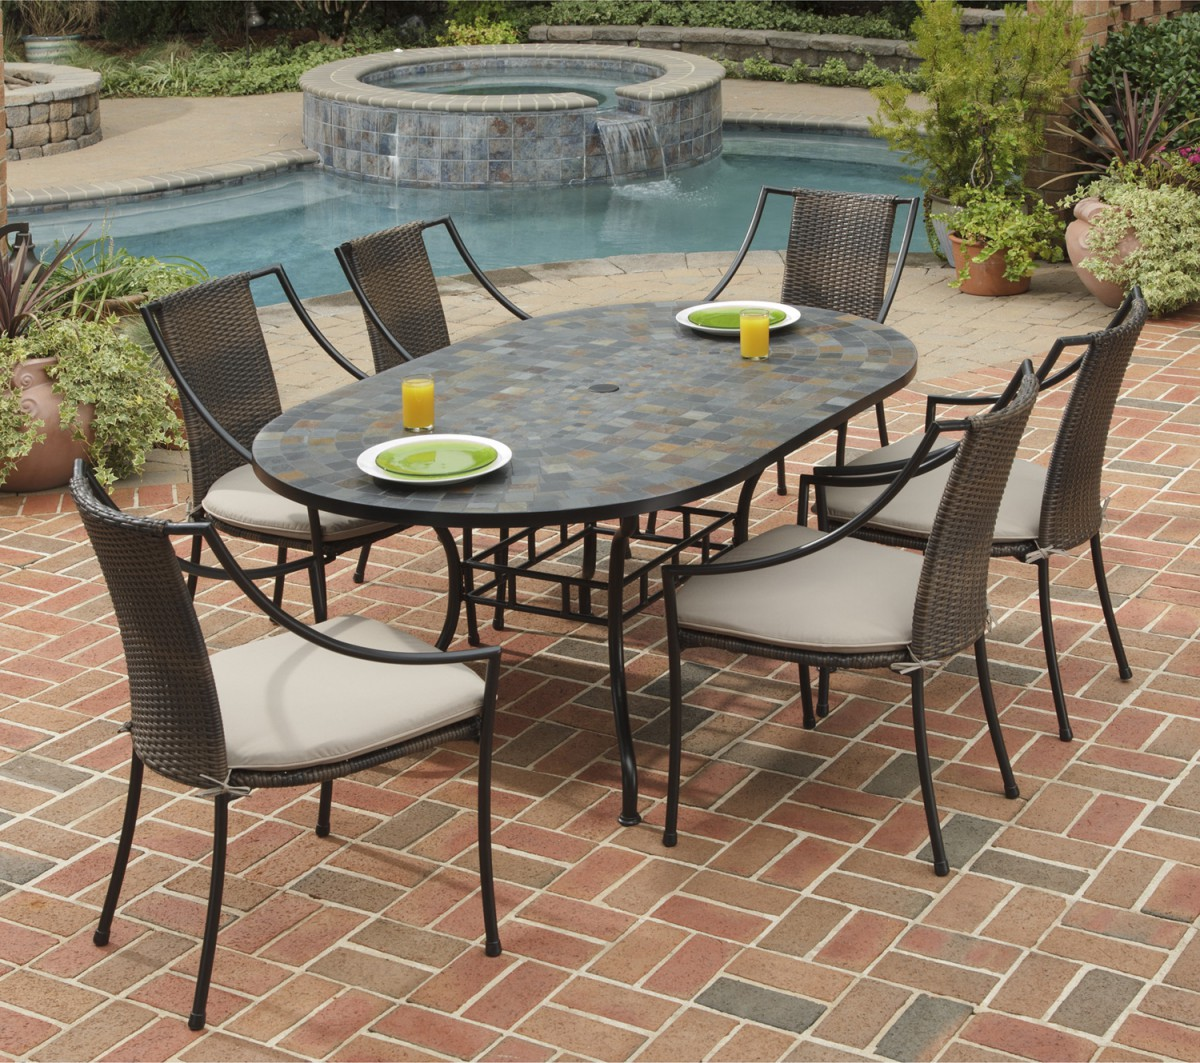 Home styles stone harbor oval outdoor dining table patio for Garden patio table